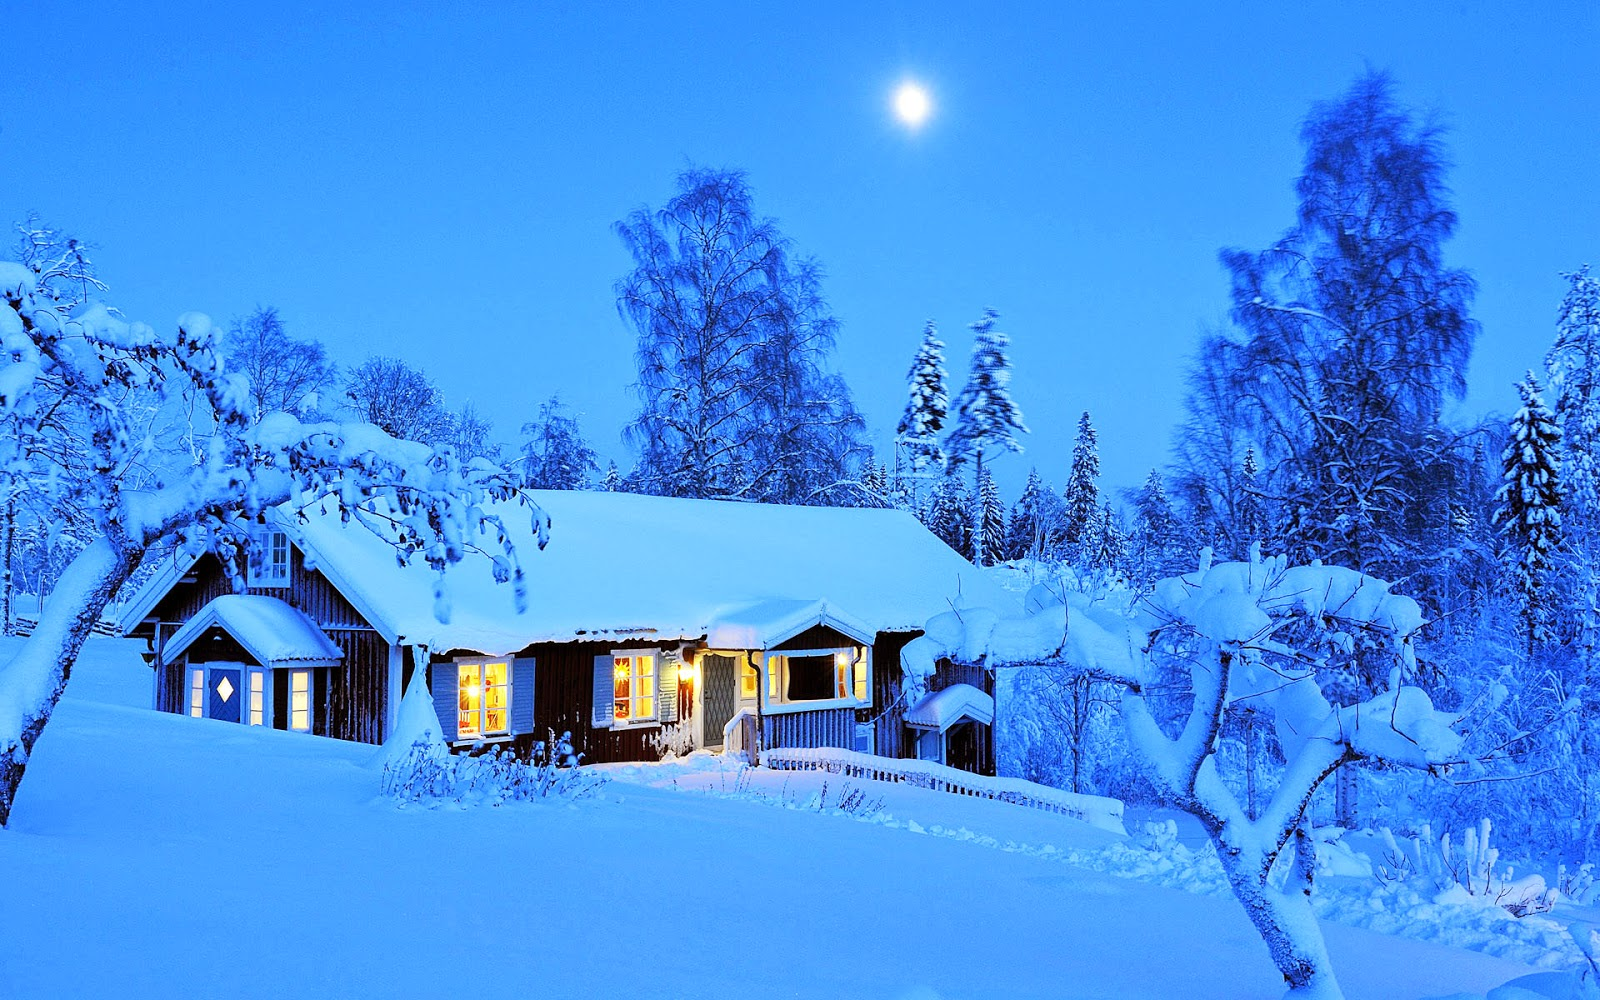 Winterlandschaft desktopmotive